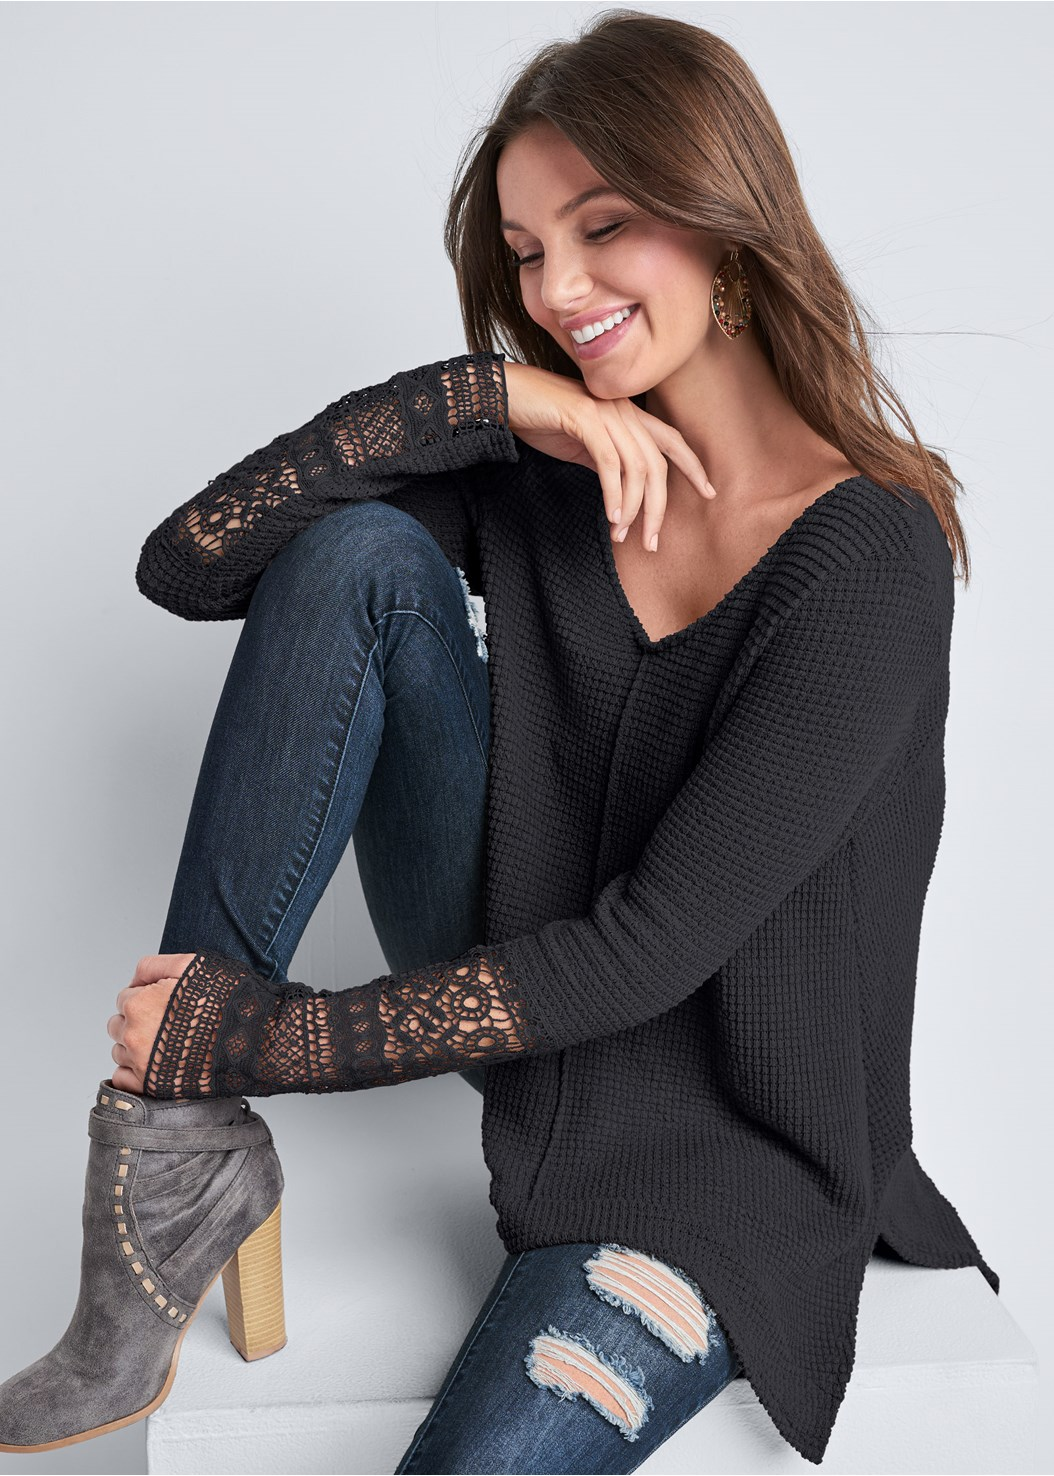 Casual Waffle Knit Top,Capri Legging Two Pack,Ripped Skinny Jeans,Mid Rise Slimming Stretch Jeggings,Lace Detail Bootie